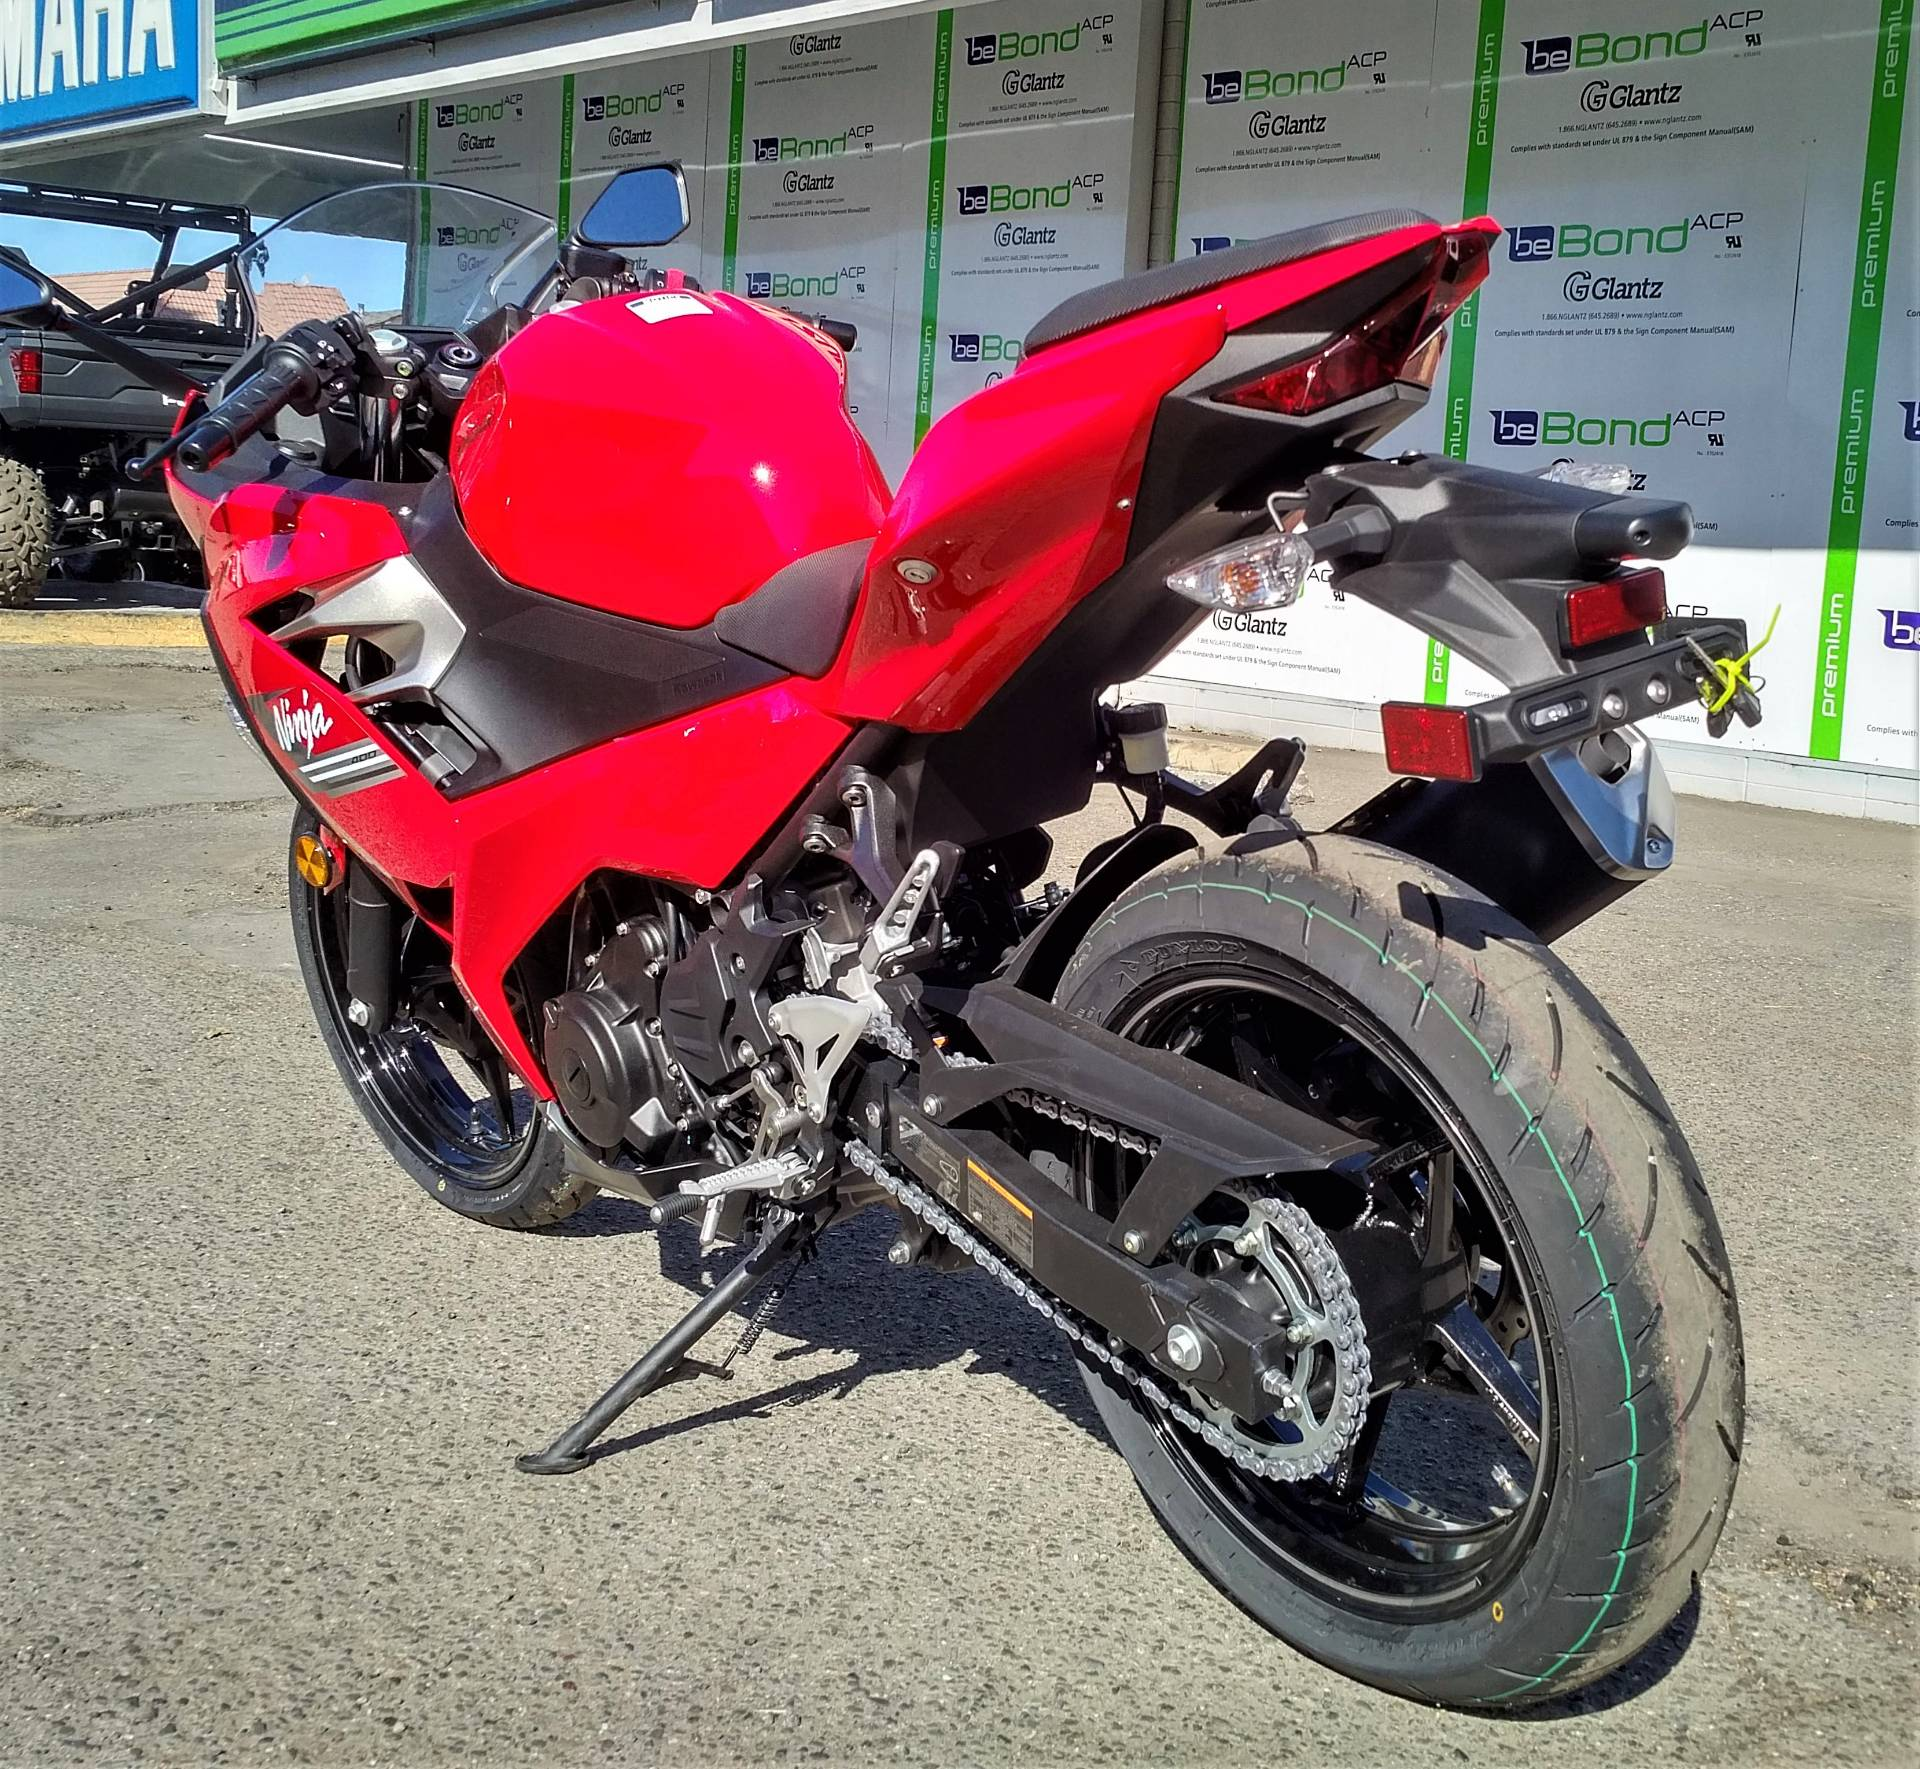 2021 Kawasaki Ninja 400 ABS in Salinas, California - Photo 5